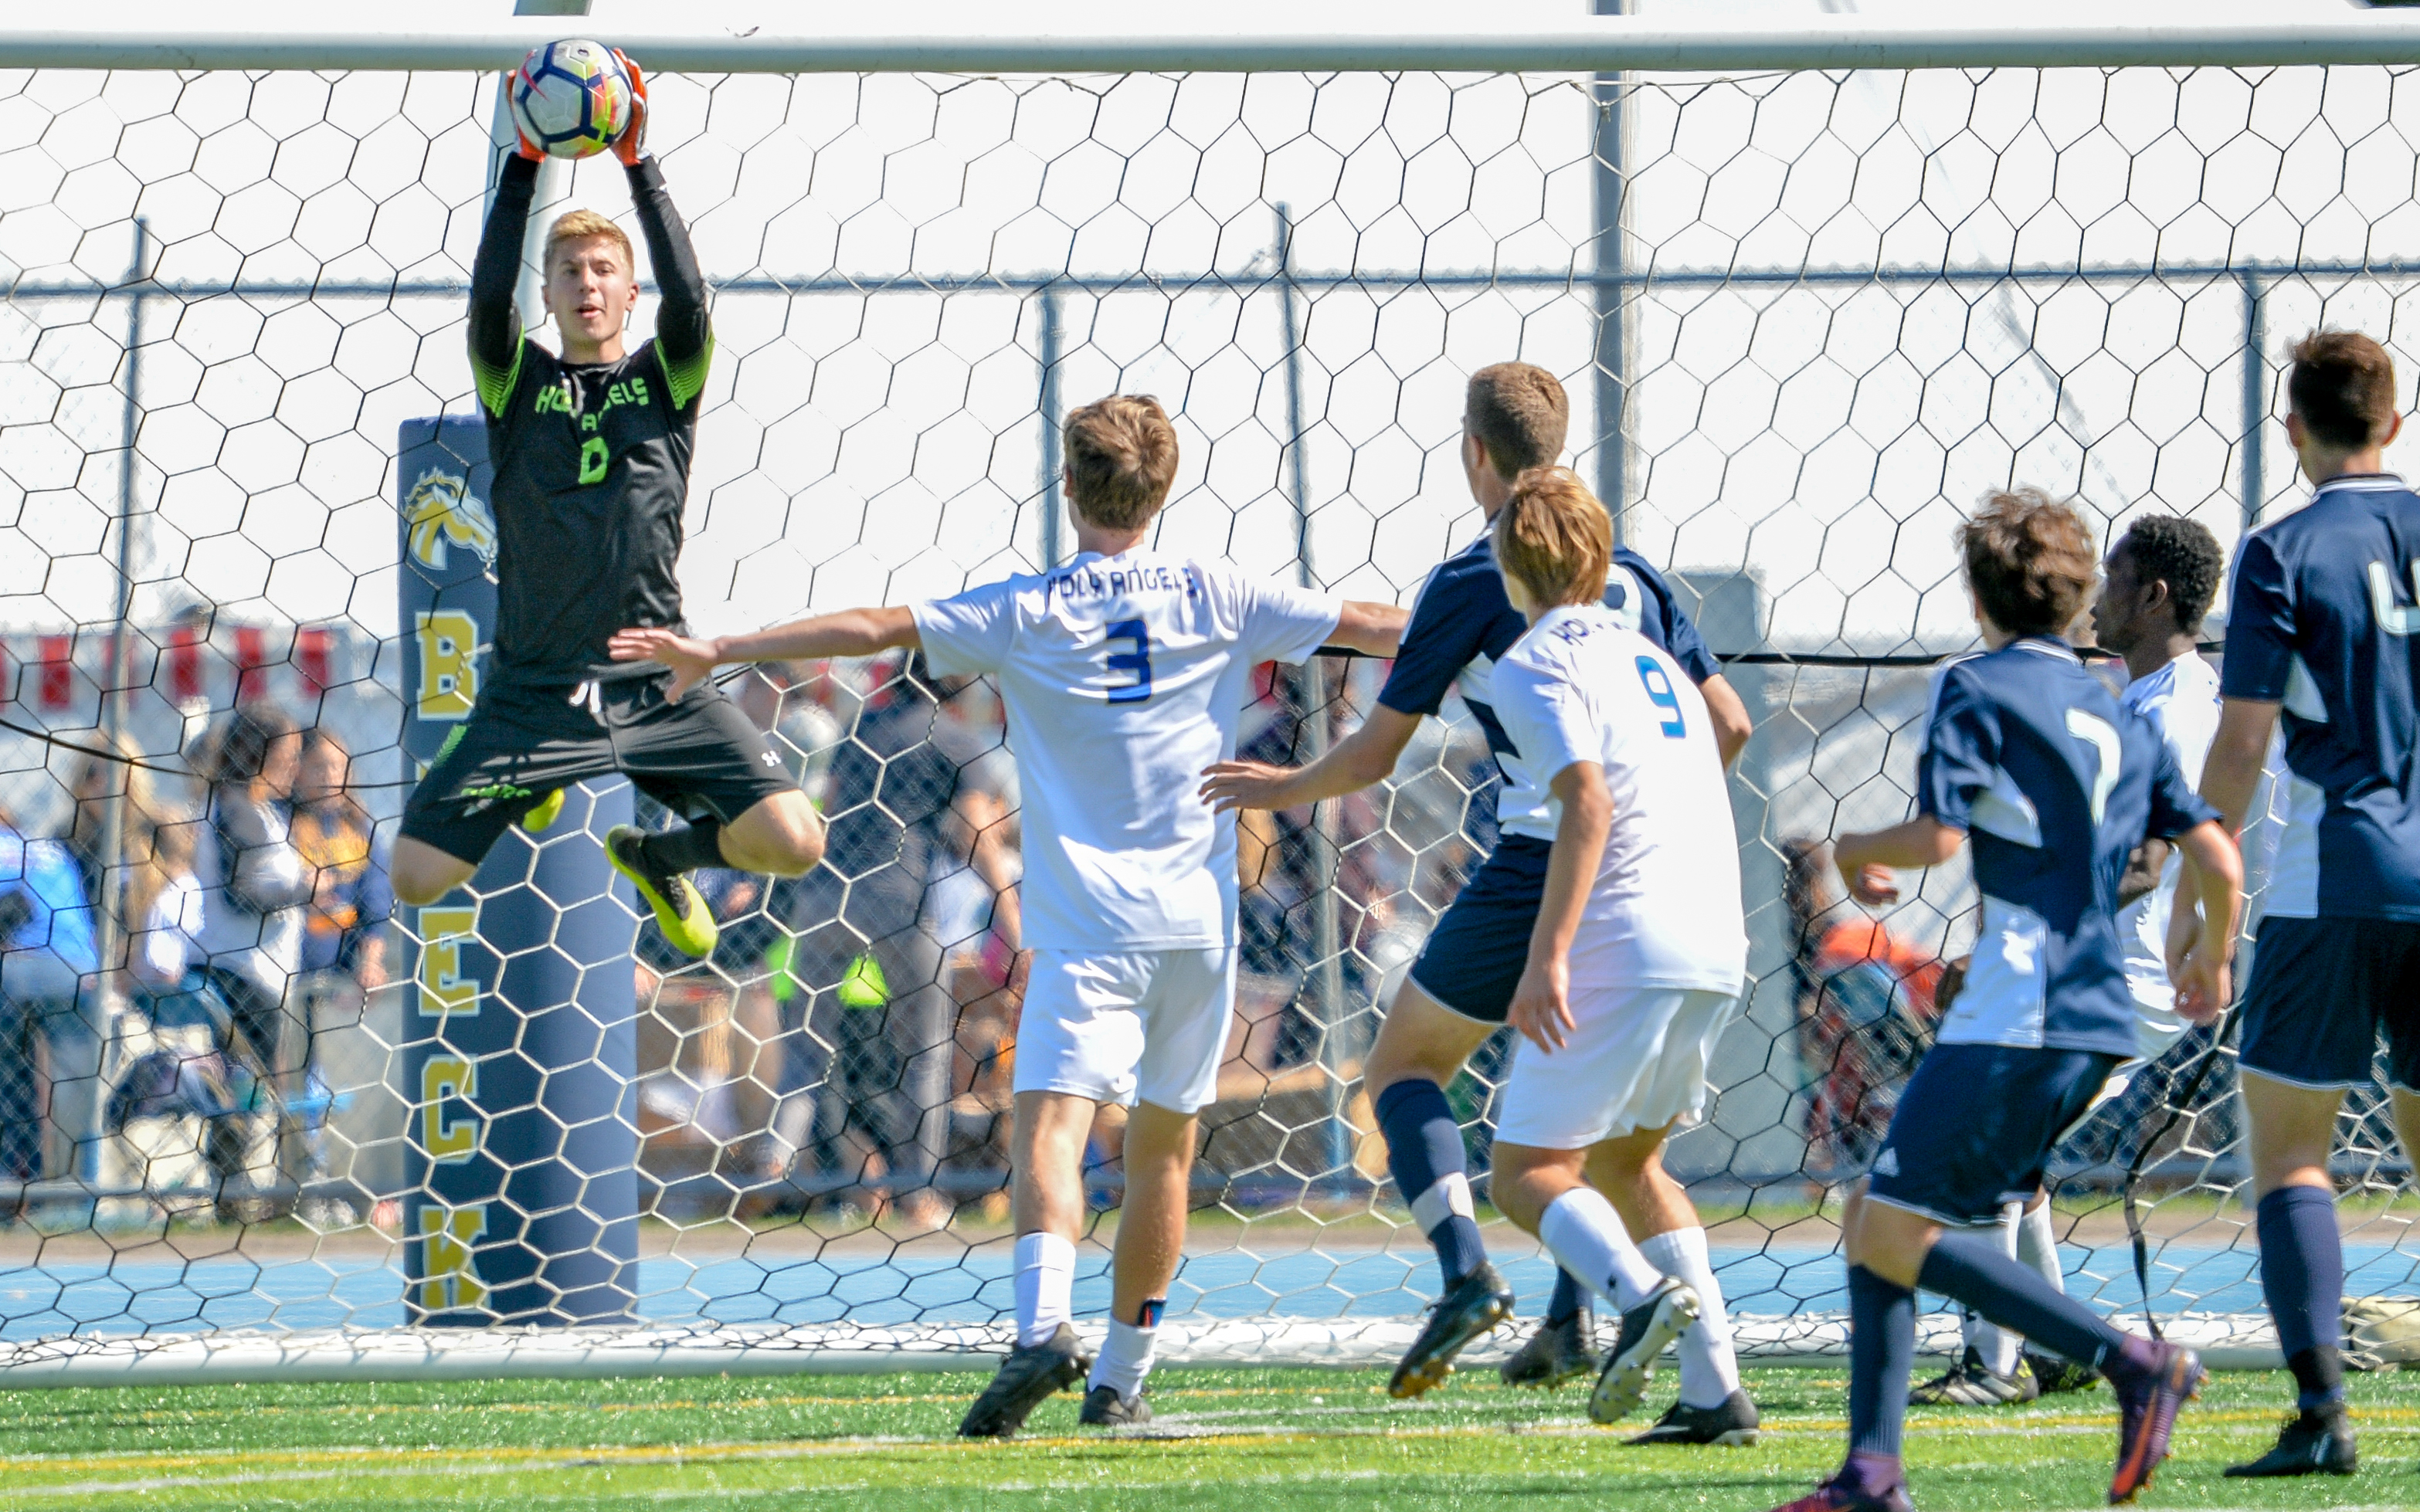 Holy Angels goalkeeper Peter Forseth keeps the ball from the back of the net in the first half as the Stars and Mustangs end in a 0-0 double overtime tie on Saturday. Photo by Earl J. Ebensteiner, SportsEngine